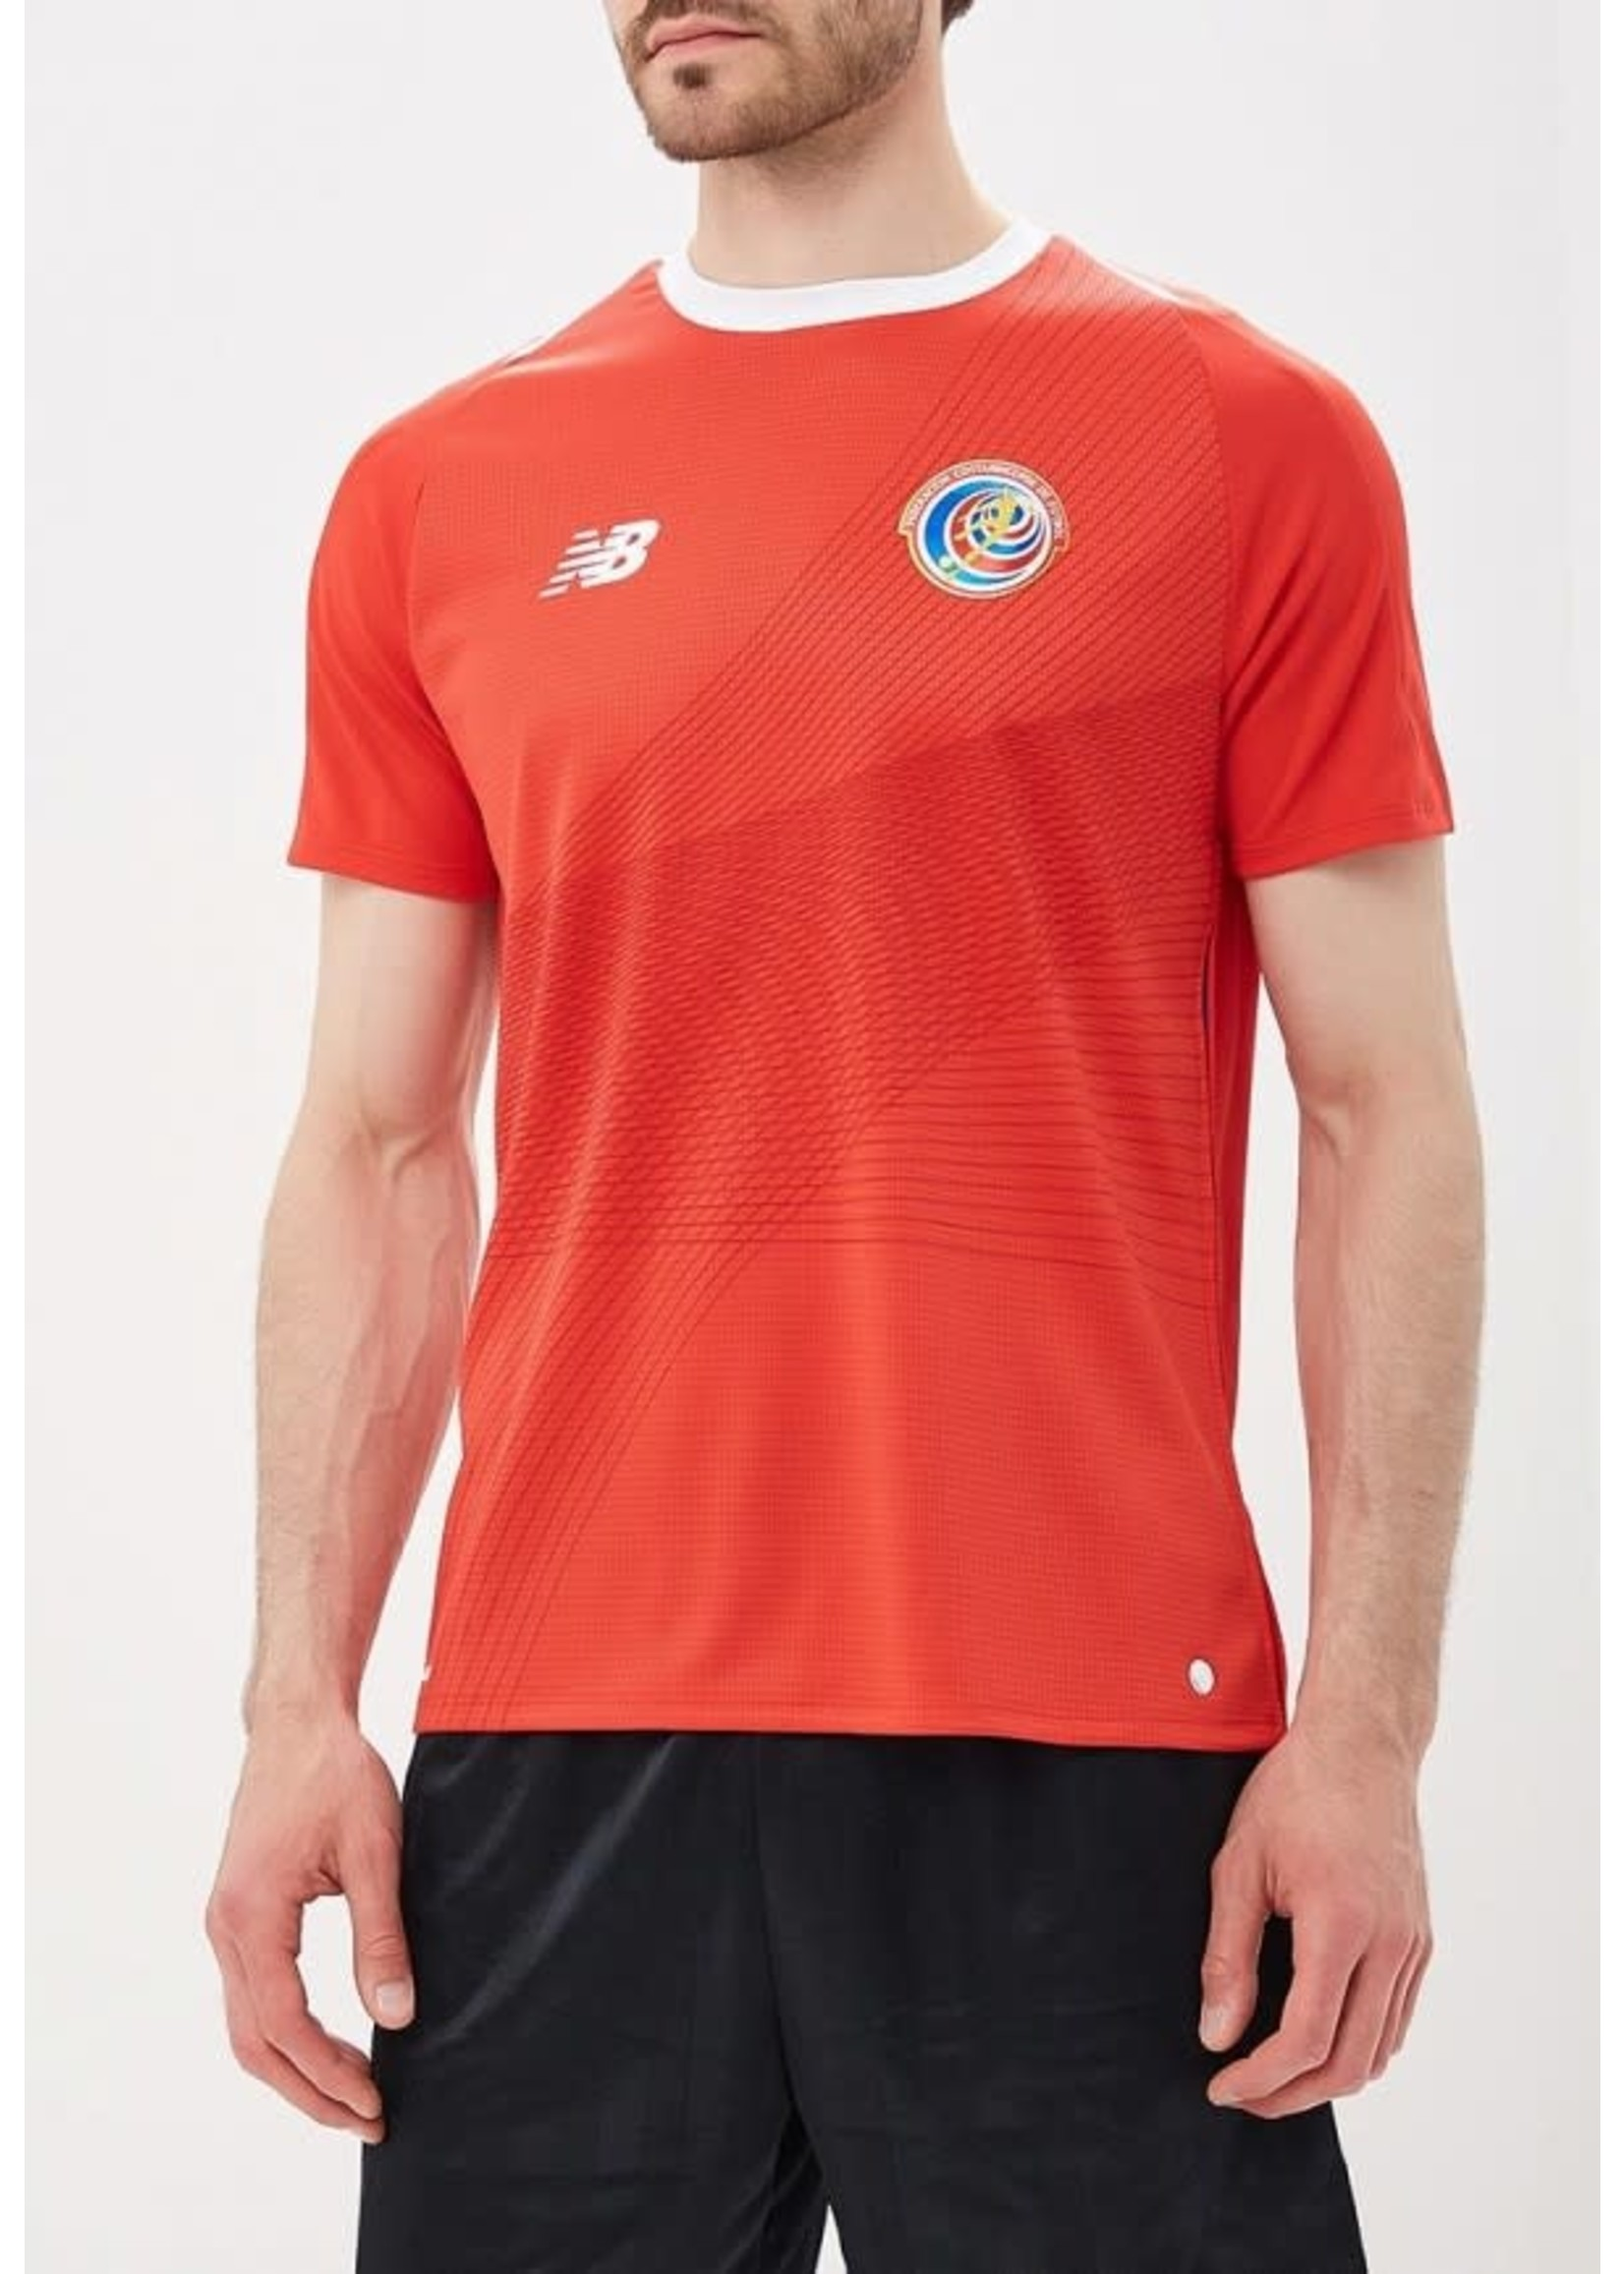 New Balance Costa Rica 18/19 Home Jersey Adult